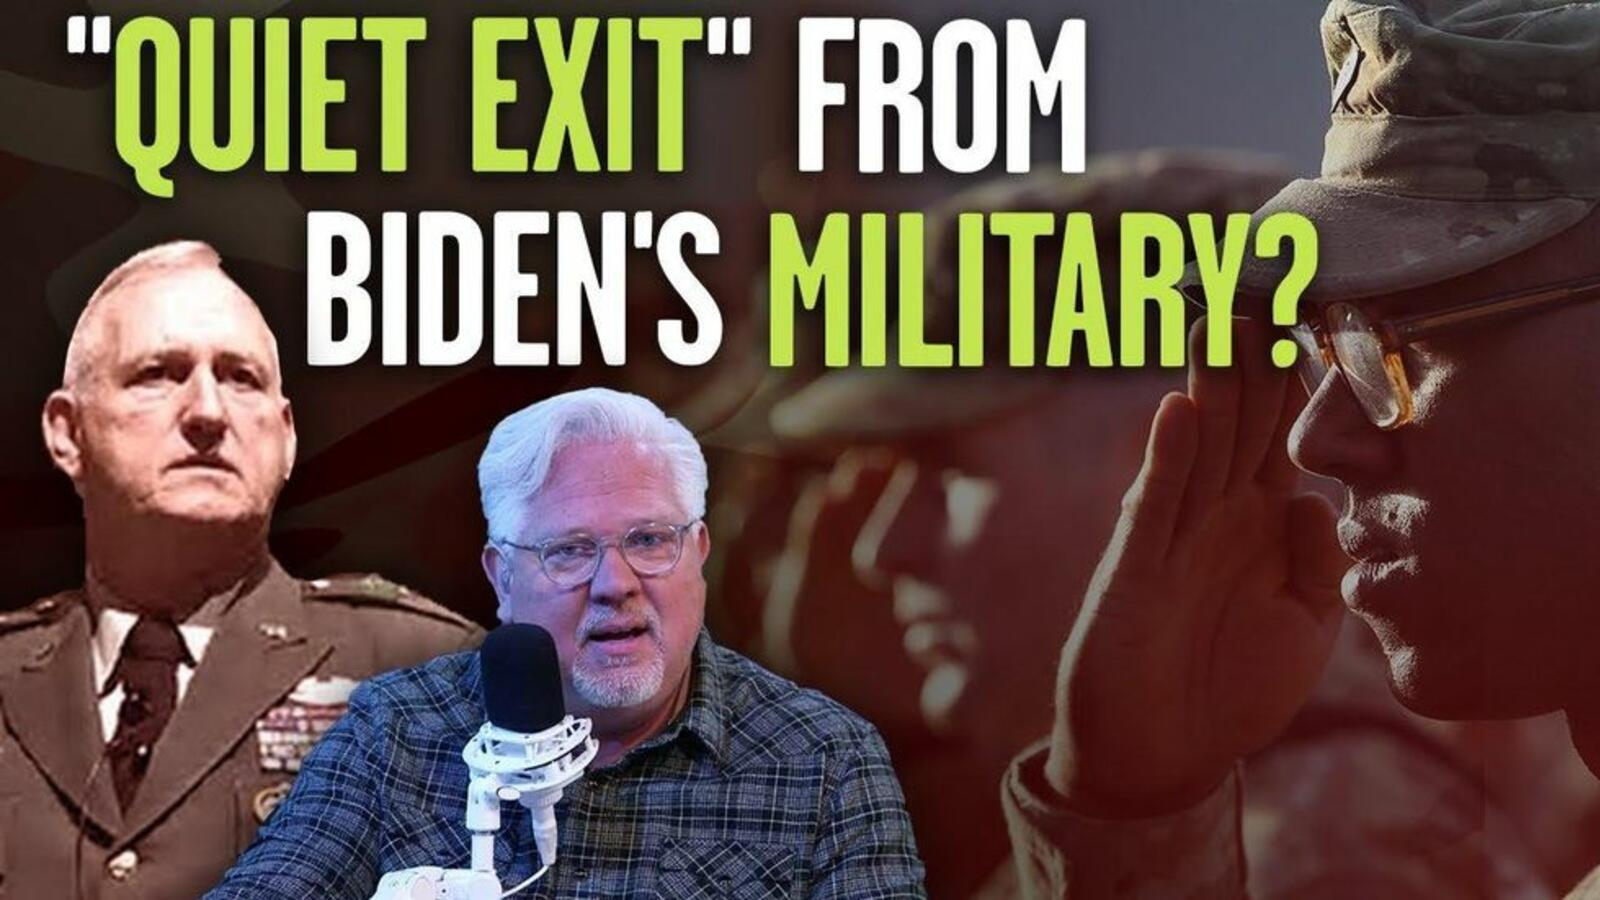 General predicts 'QUIET EXIT' of military members dissatisfied with far-...